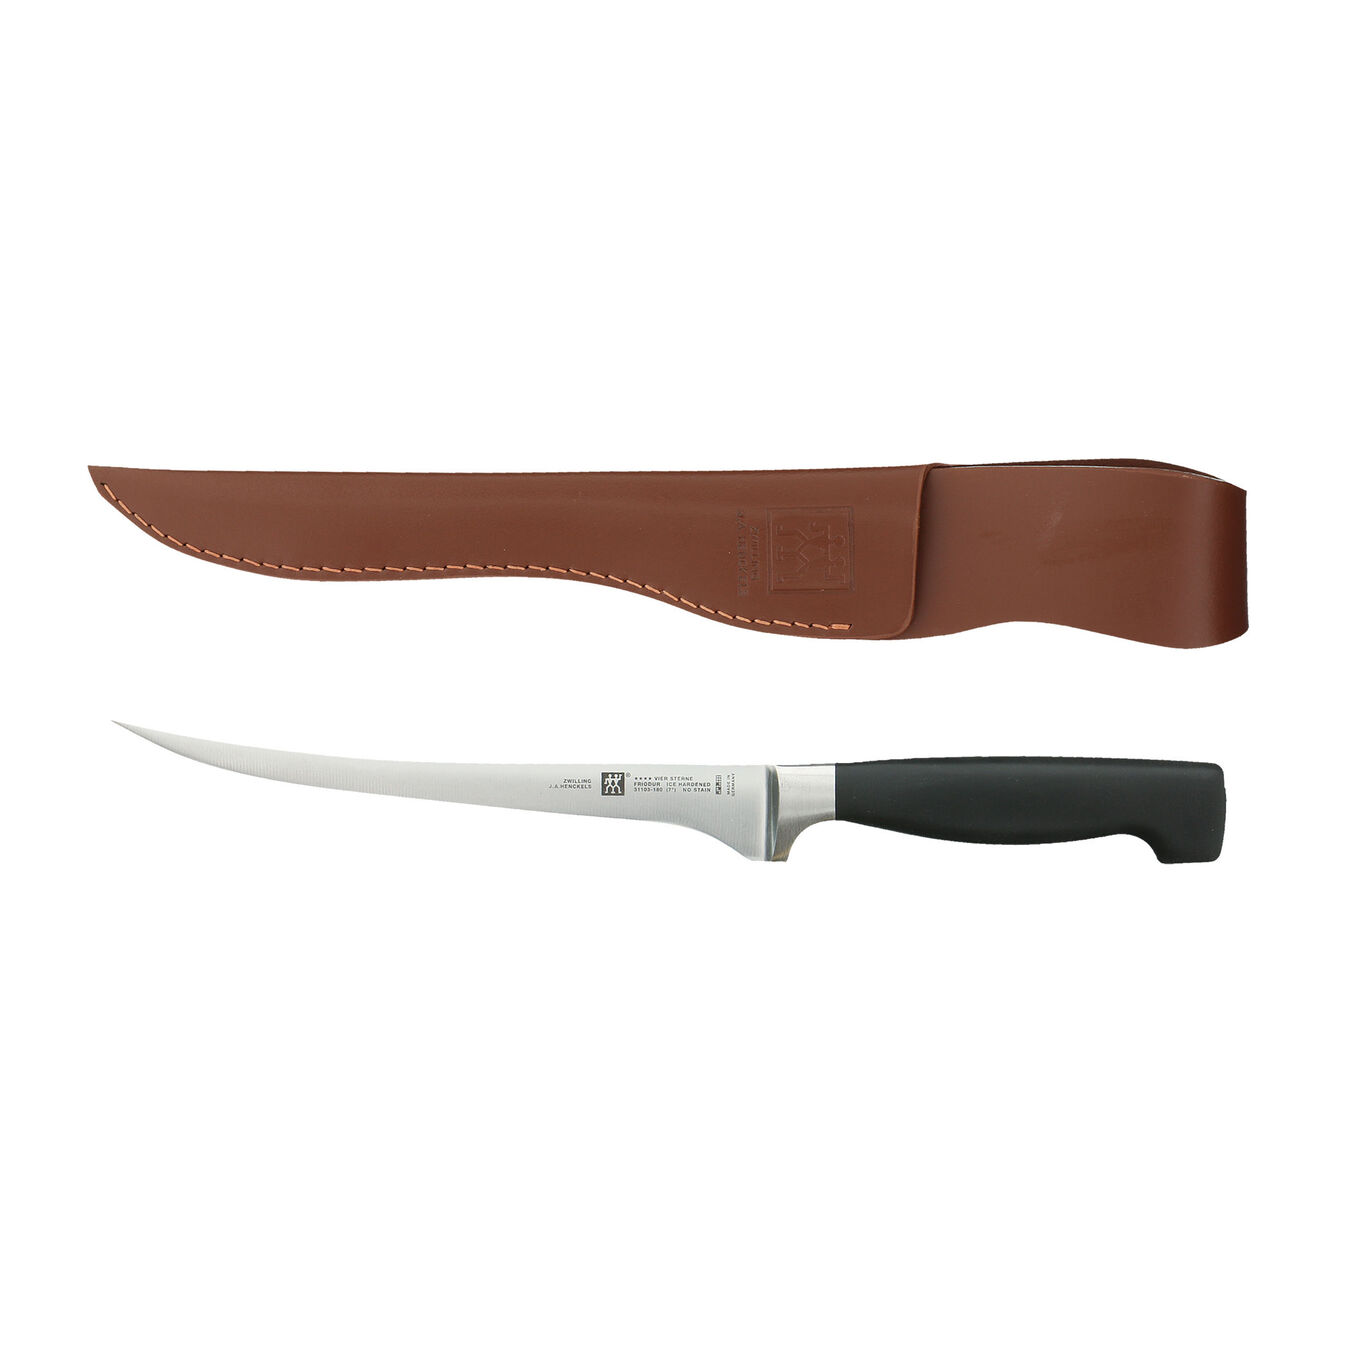 7-inch Fish Fillet Knife and Leather Sheath Set,,large 1